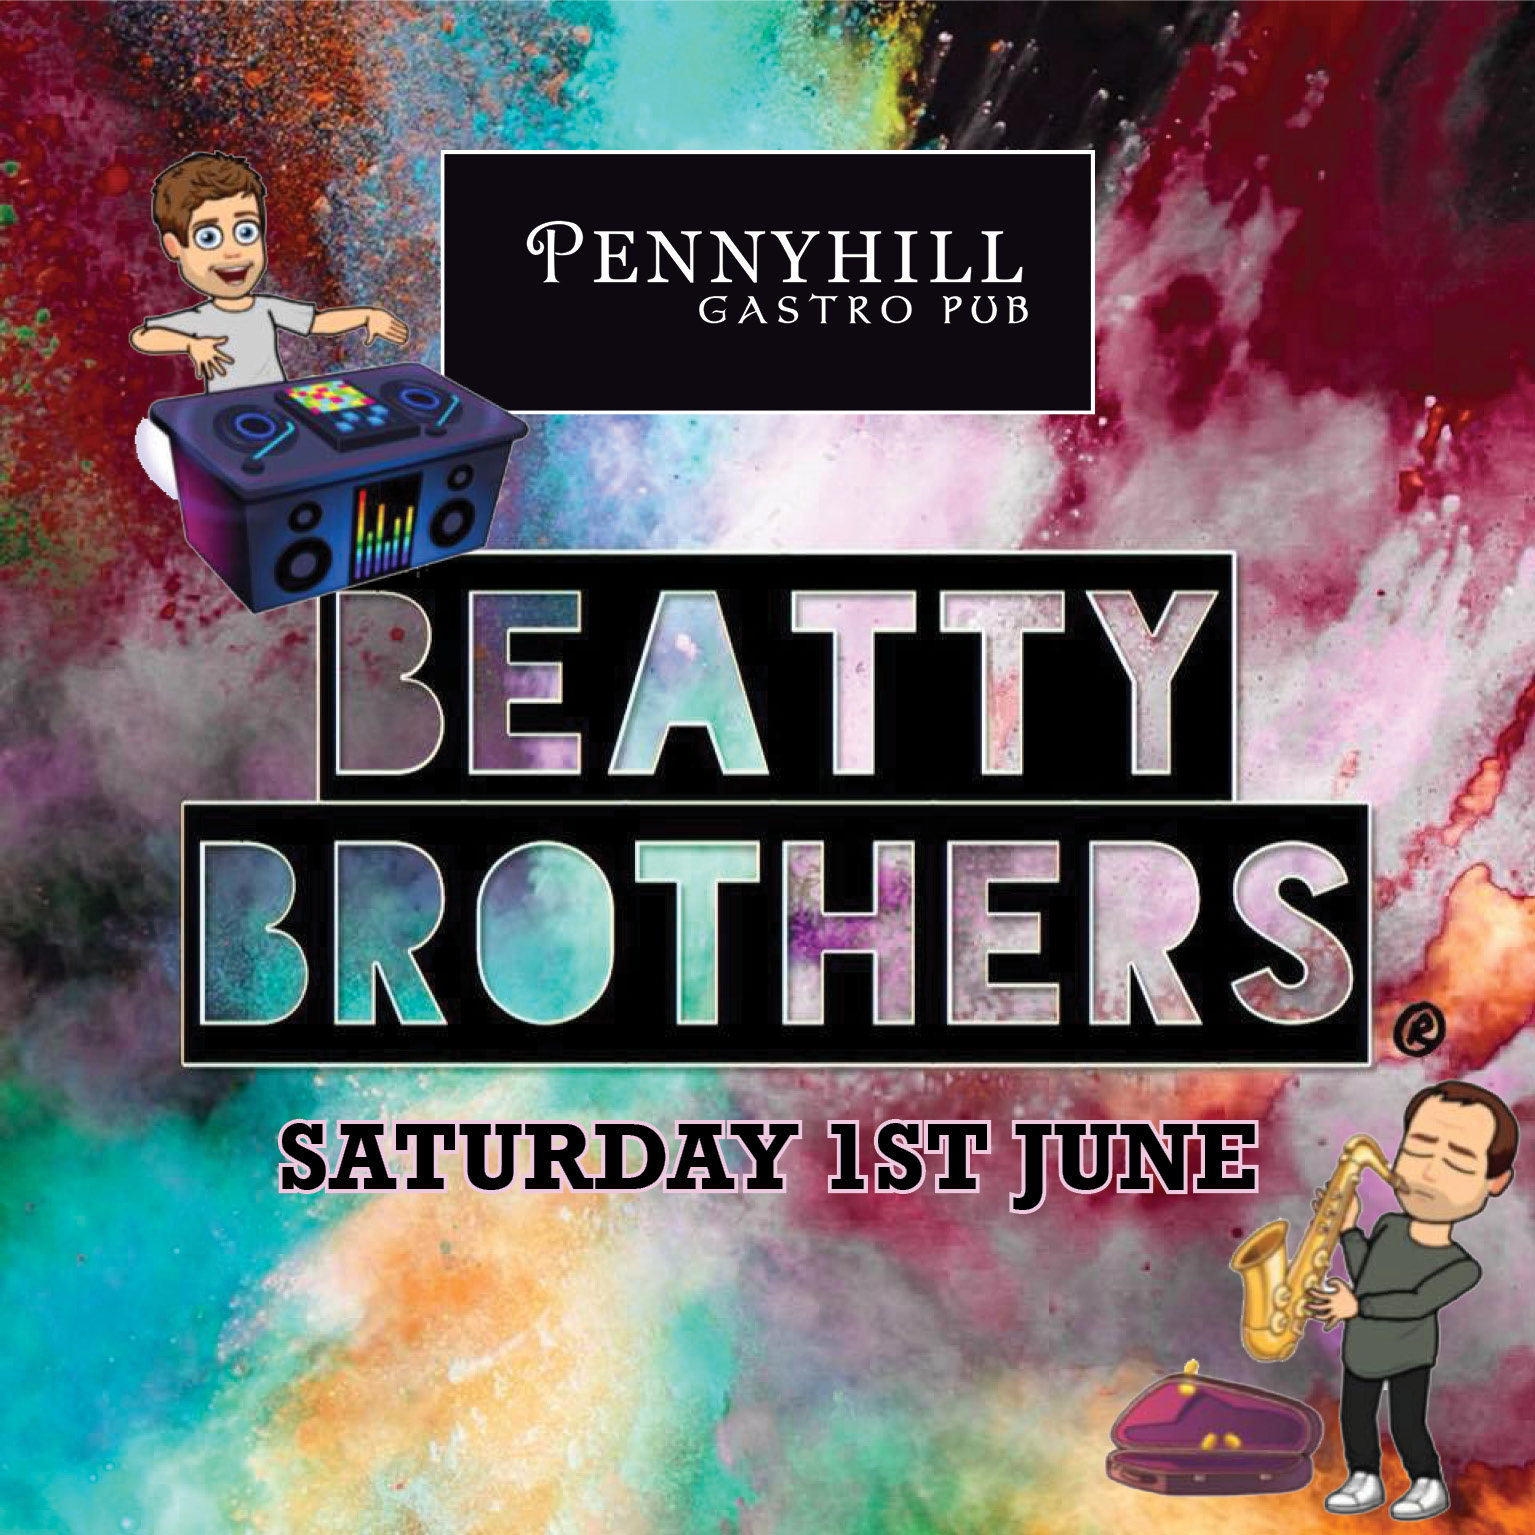 June Live Music at the Pennyhill. Featuring music from Beatty Brothers, Elvis Presley Tribute and Garth Brooks tribute.